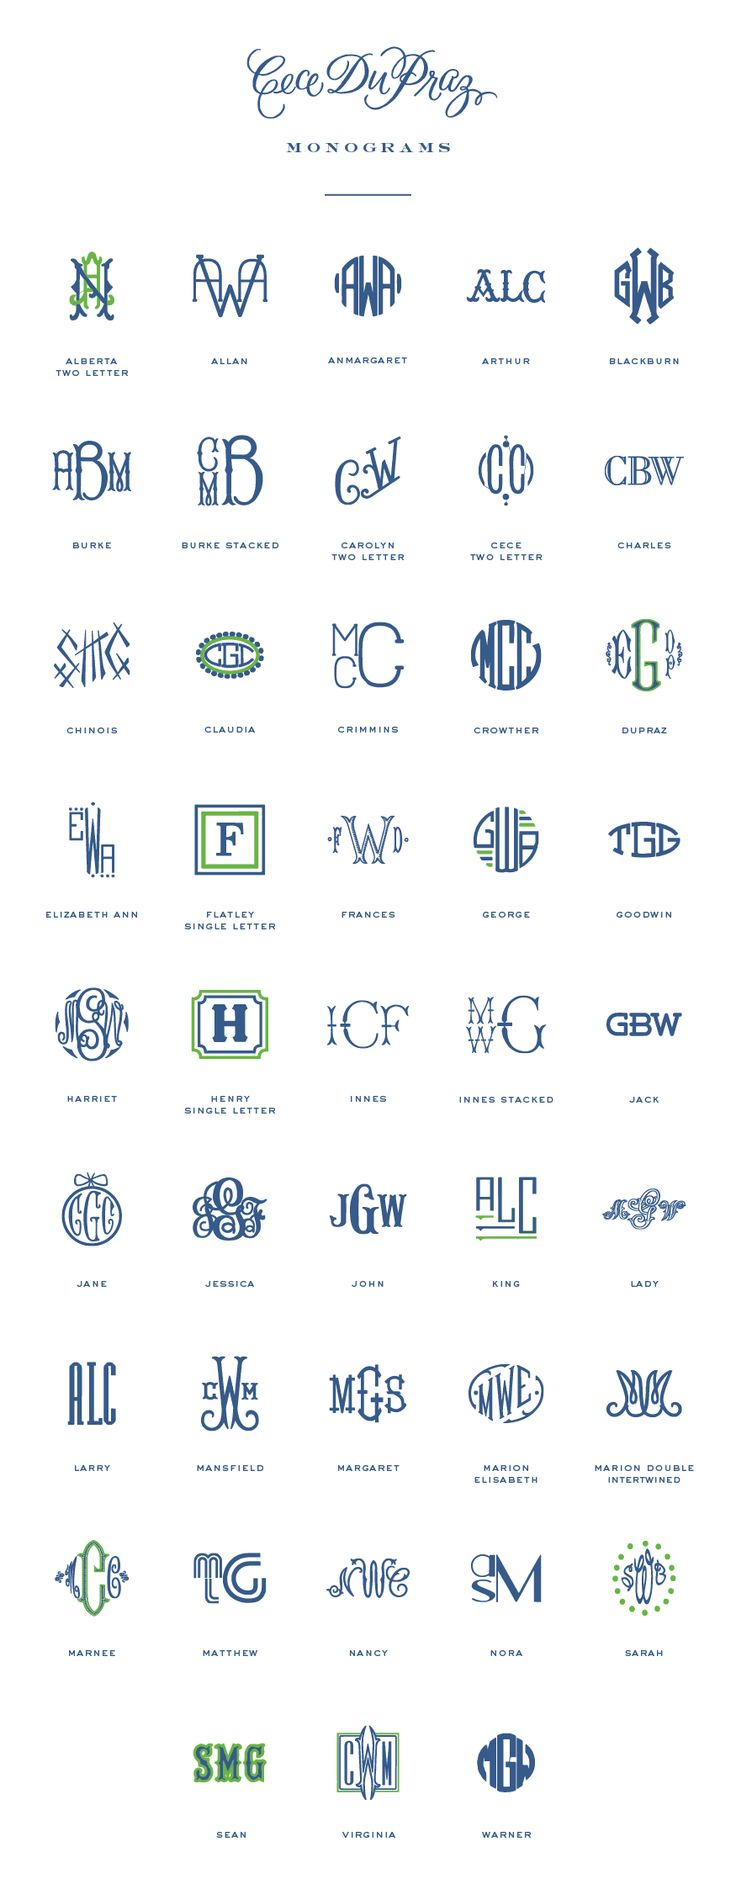 monograms | Cece DuPraz                                                                                                                                                      More